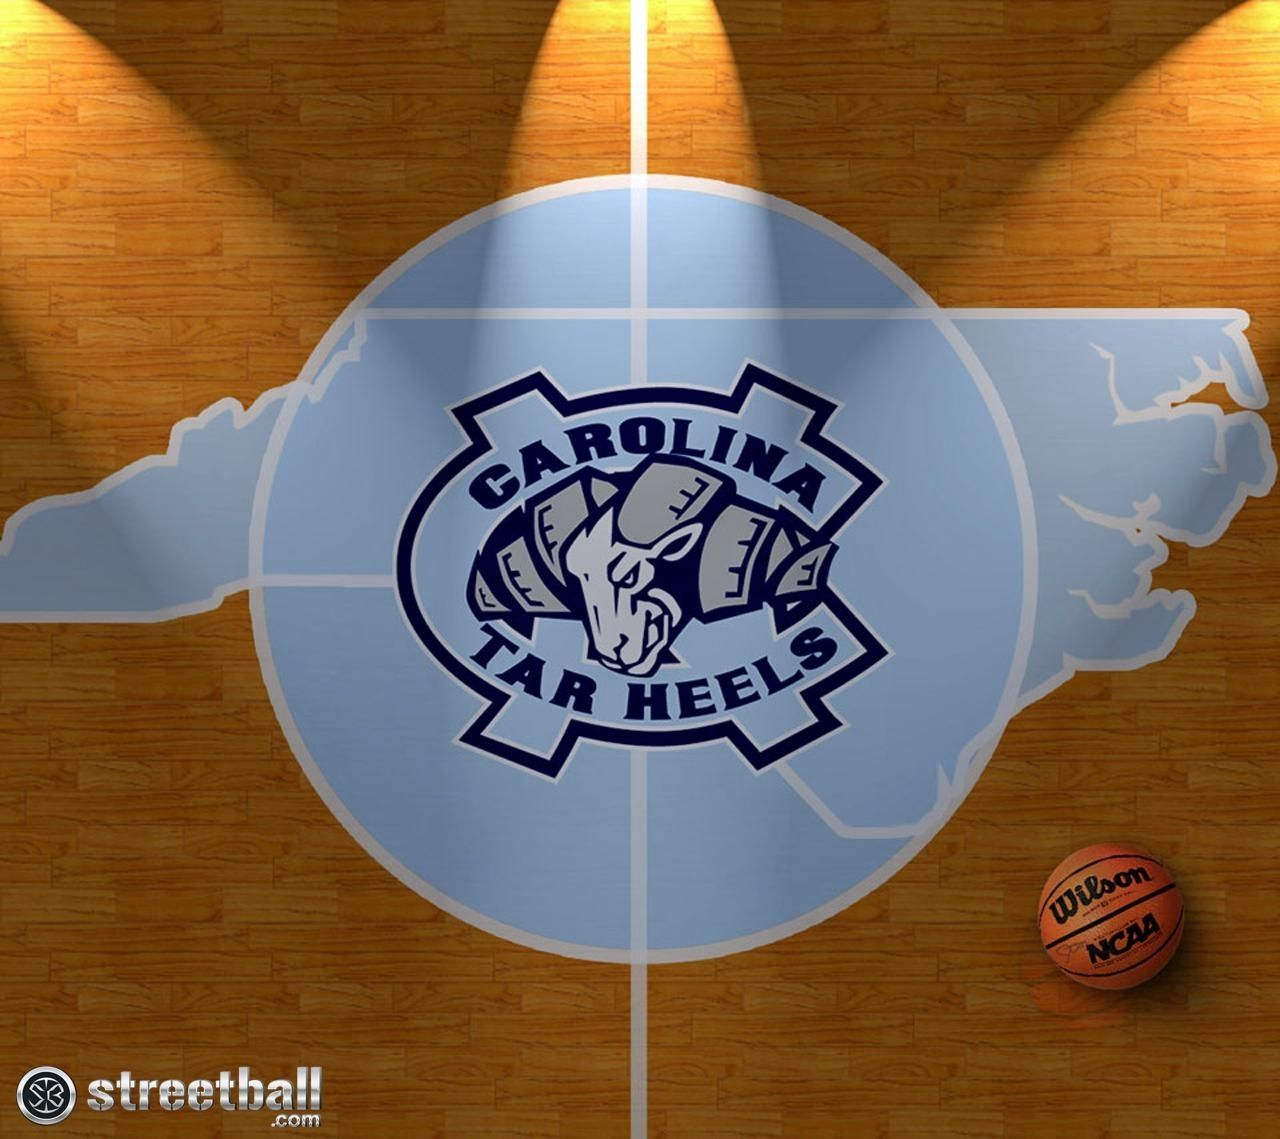 10 Latest Tar Heels Basketball Wallpaper Full Hd 1080p For Pc Background Unc Basketball North Carolina Tar Heels Basketball Tarheels Basketball